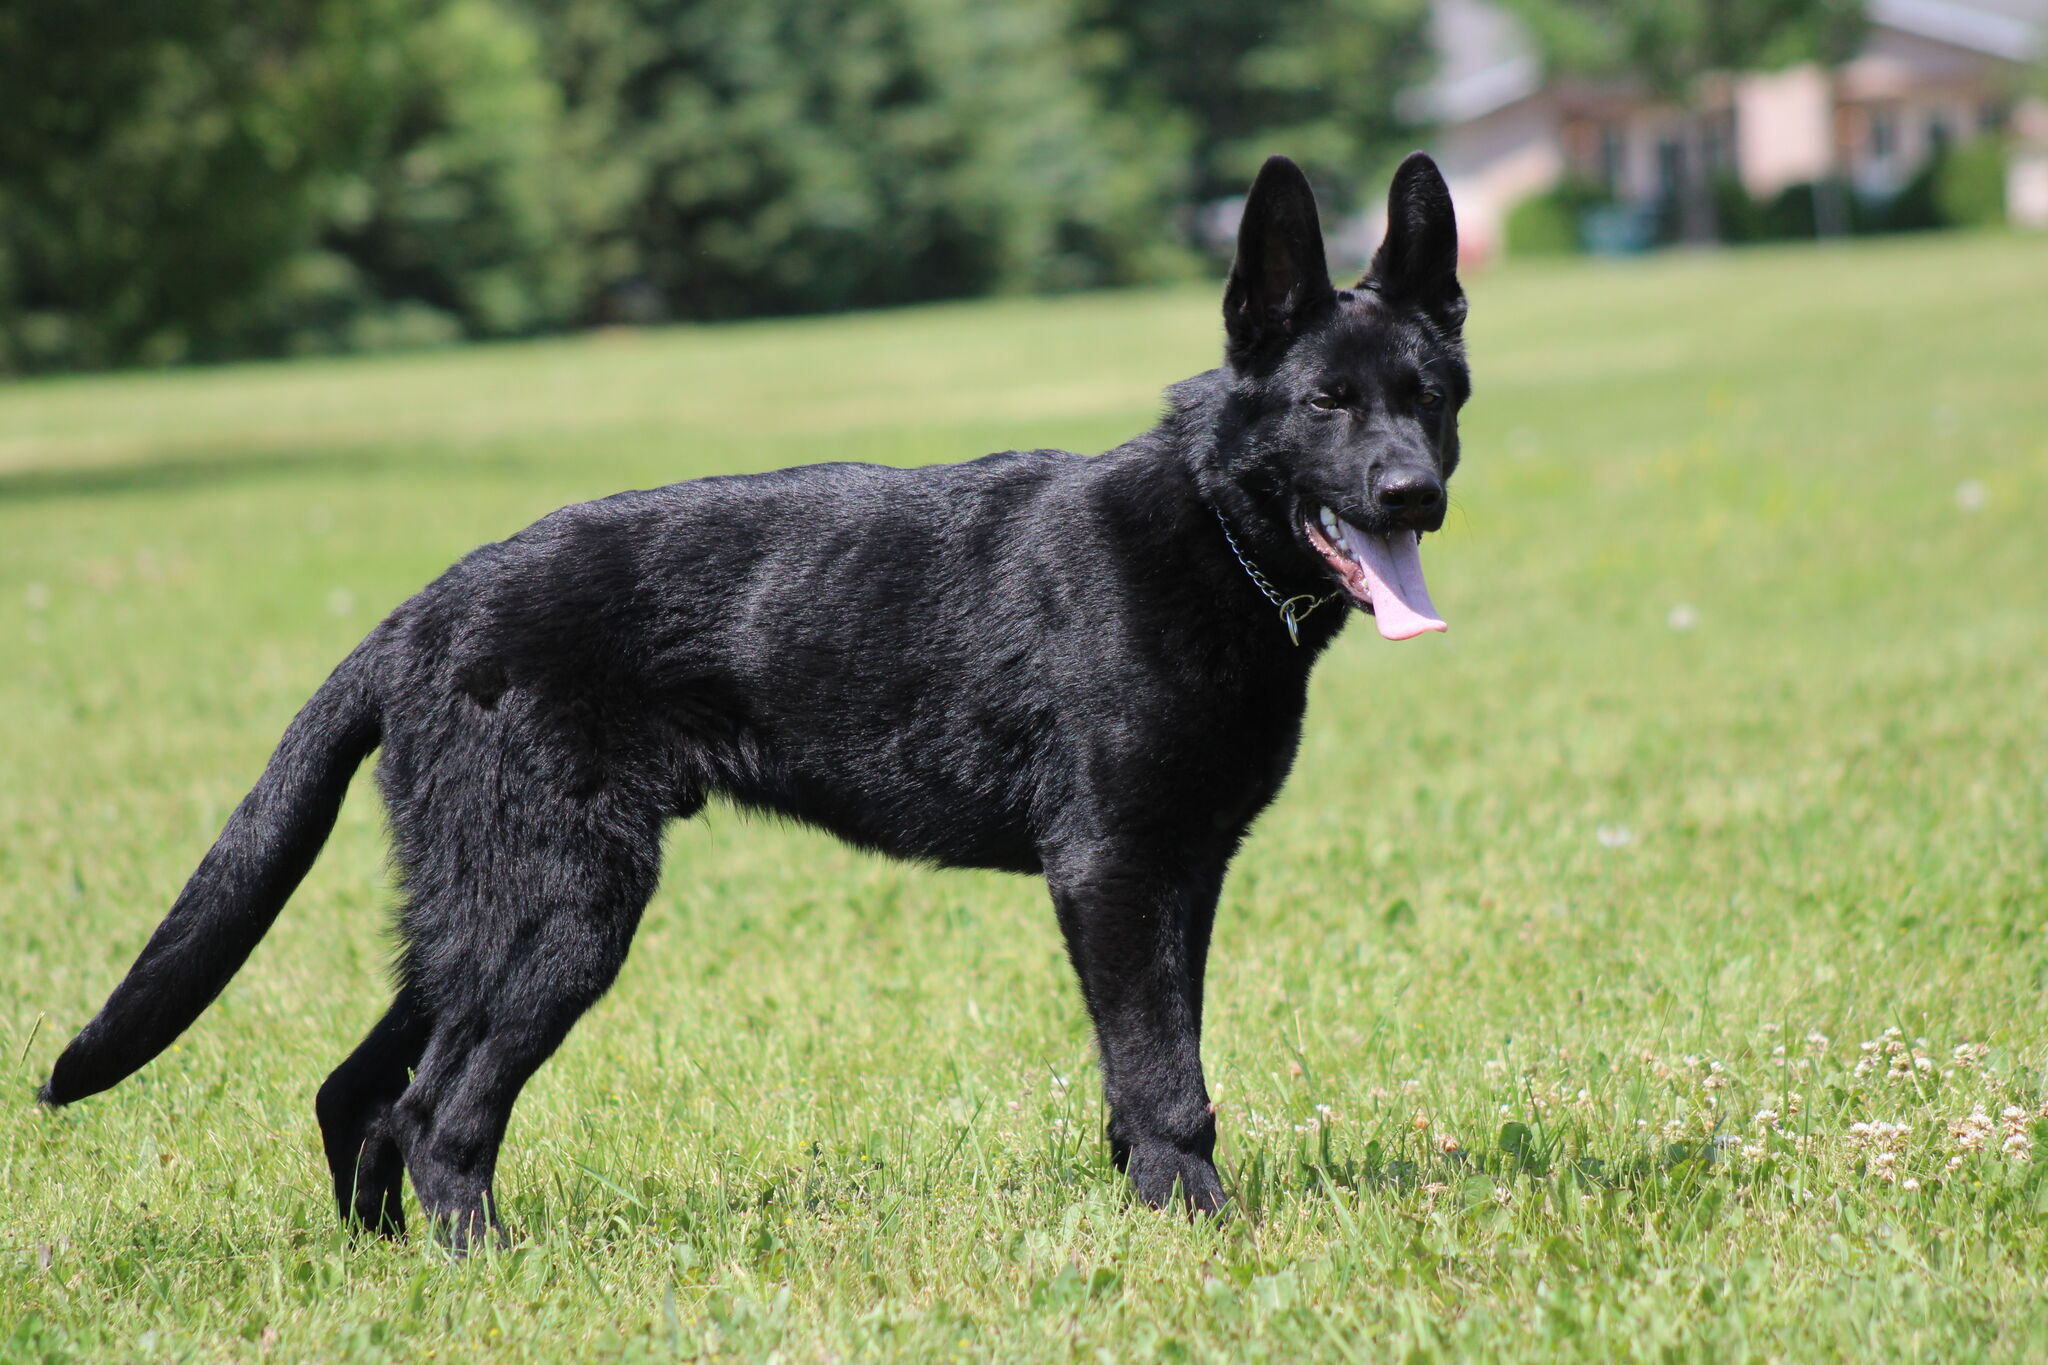 Pixel is the first all-black German Shepherd that Const. Justin Neufeld has worked with.